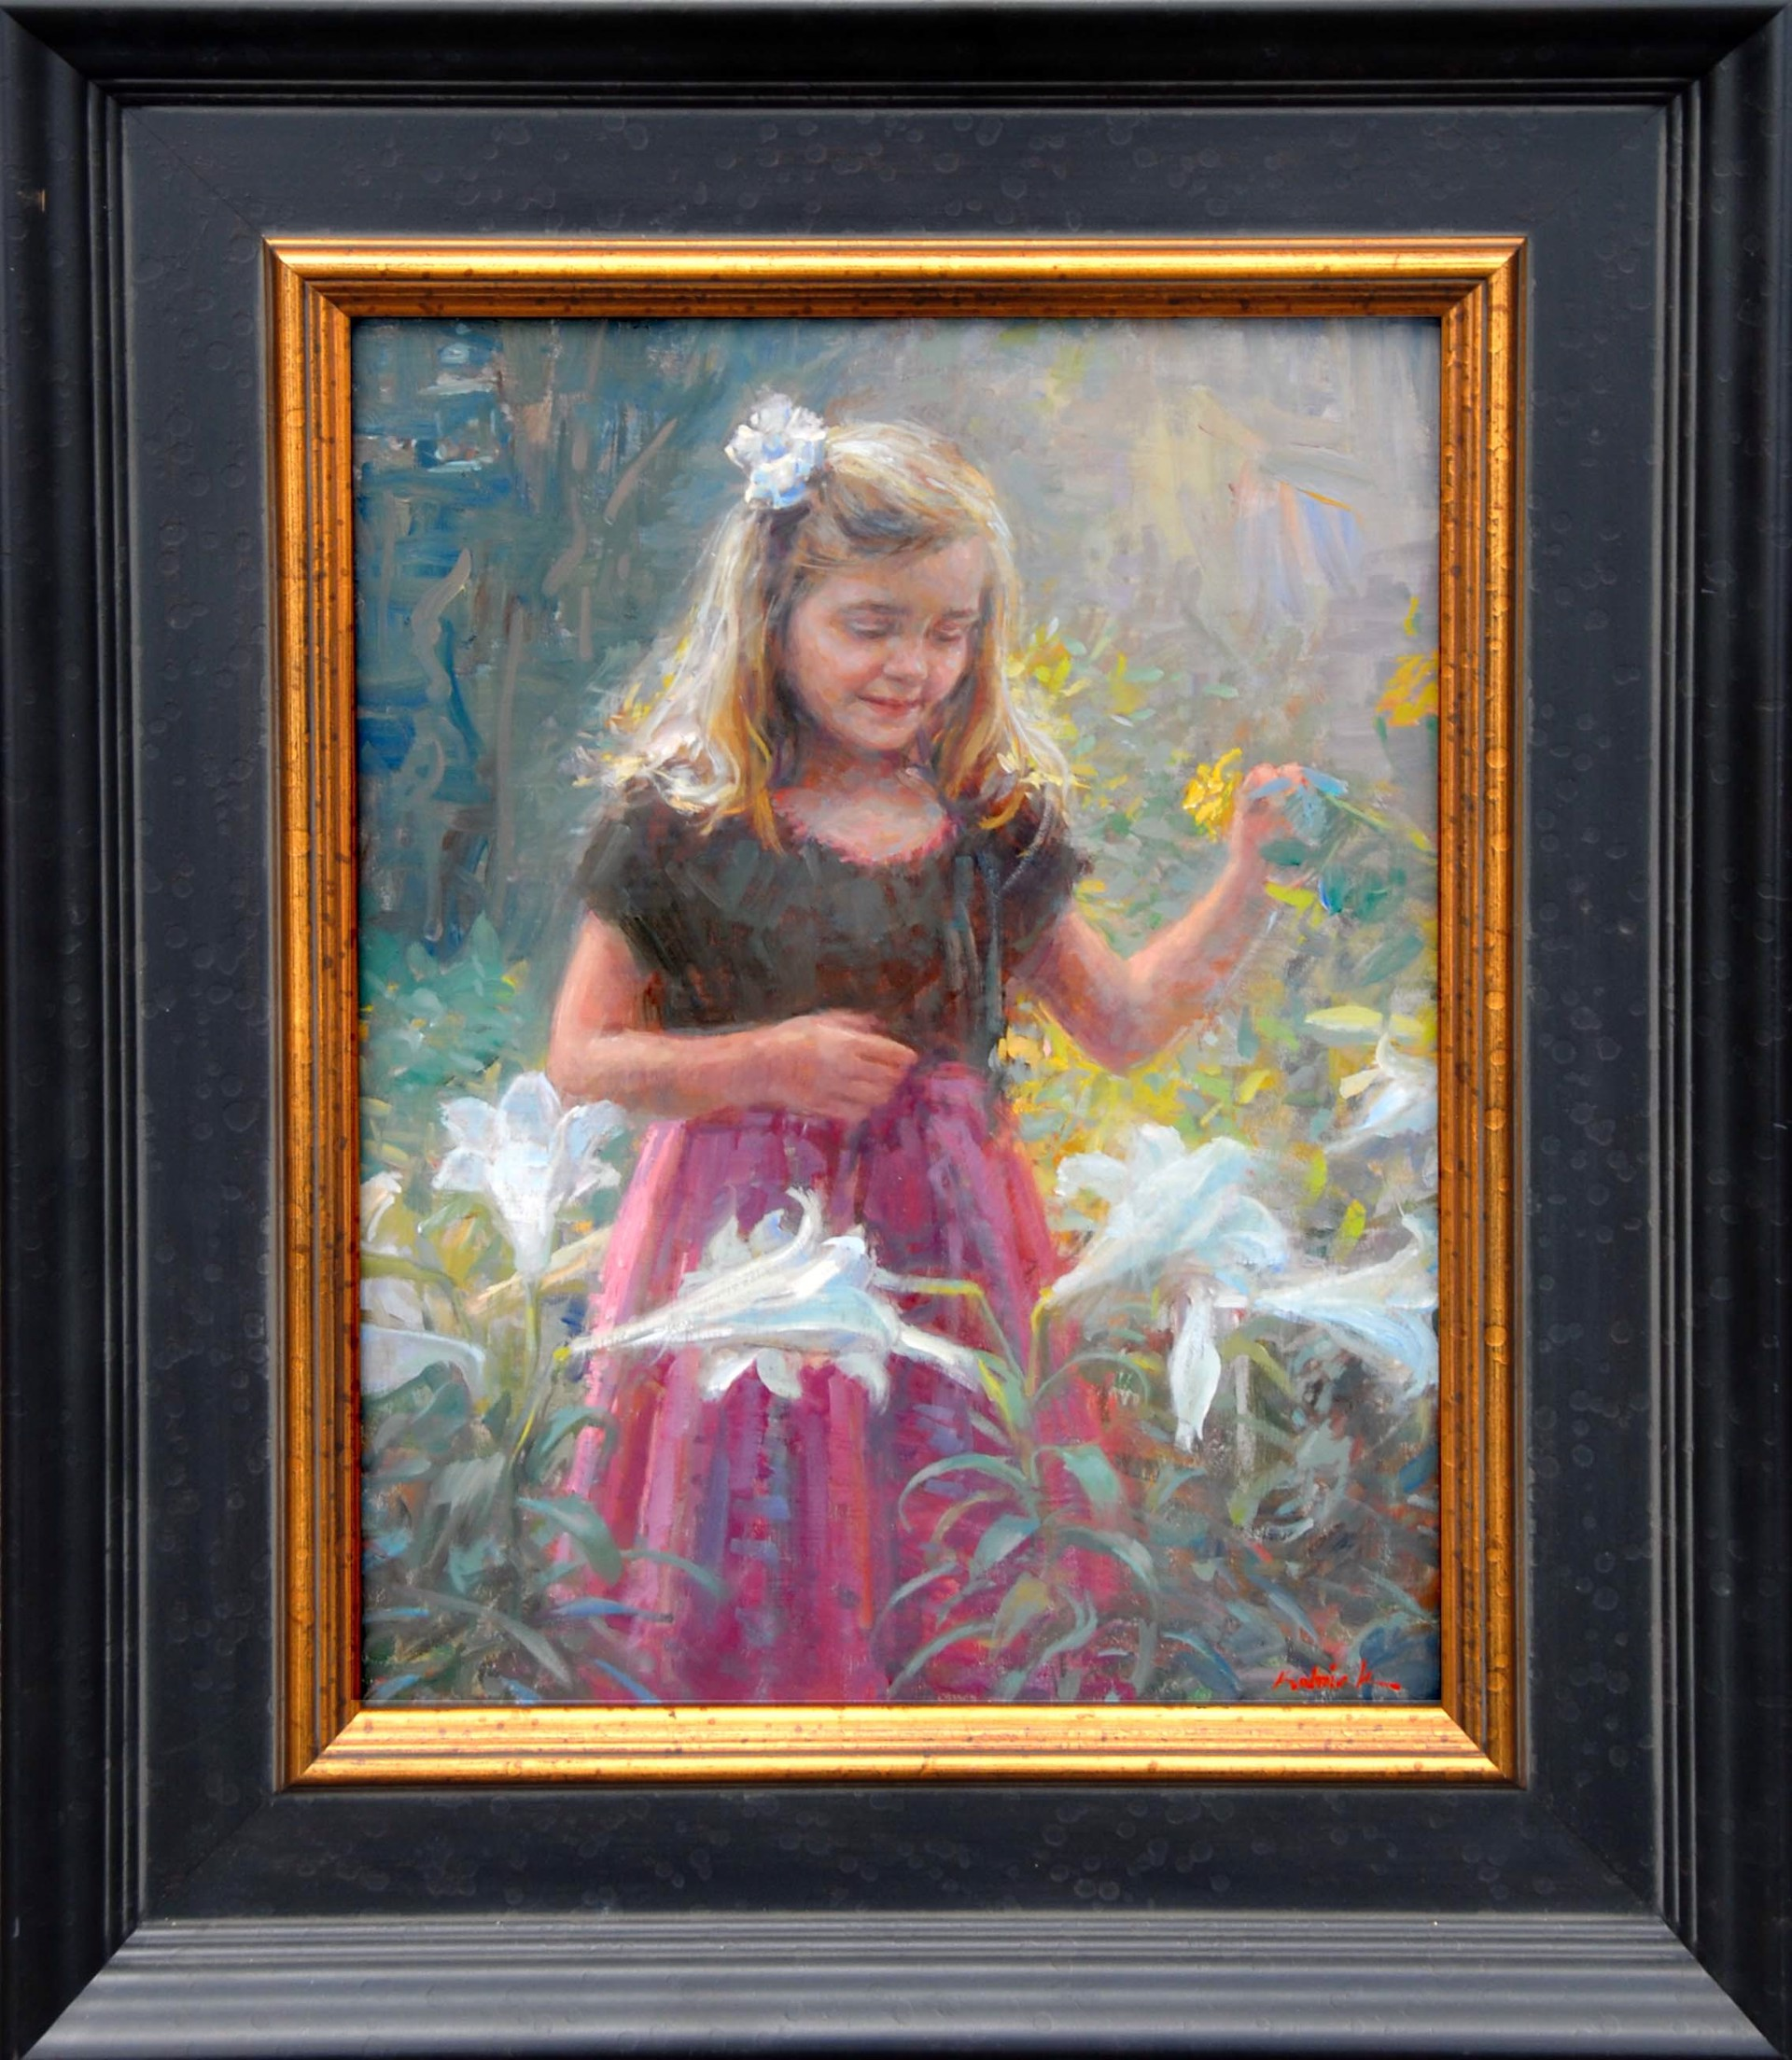 Daisy in the Lilies by William J. Kalwick Jr.